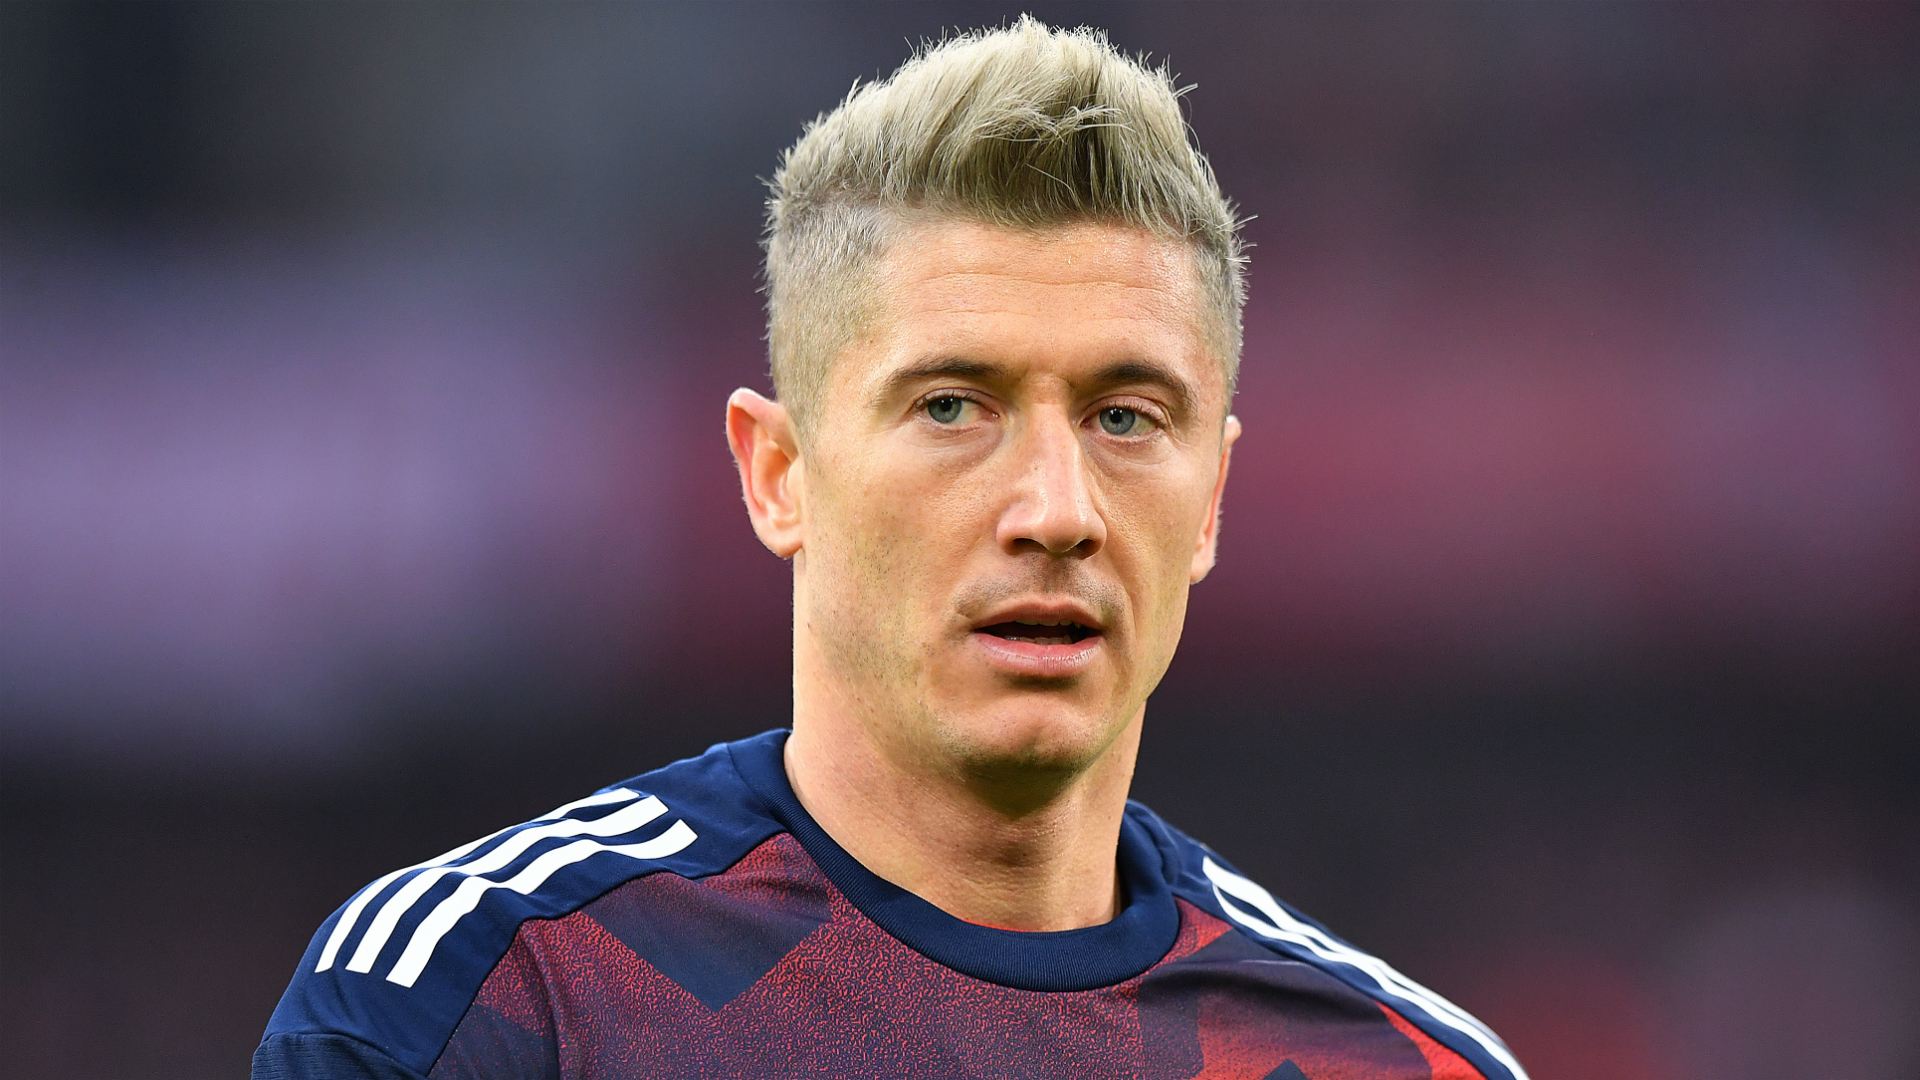 Why Bayern may be tempted into selling Lewandowski to a Madrid or PSG